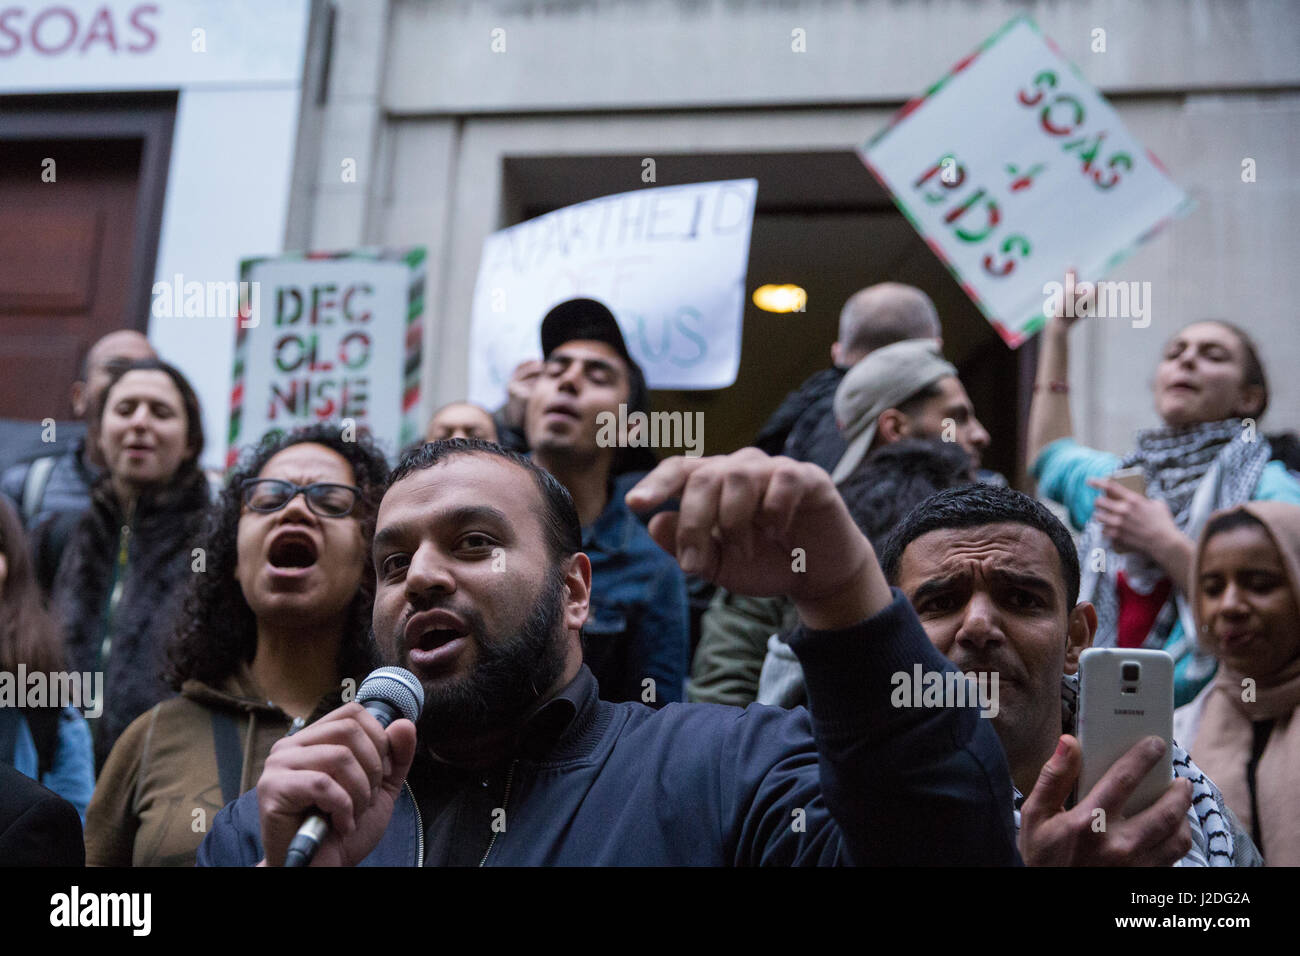 London, UK. 27th April, 2017. Mizan The Poet addresses students, staff and supporters at an 'Apartheid Off Campus' - Stock Image